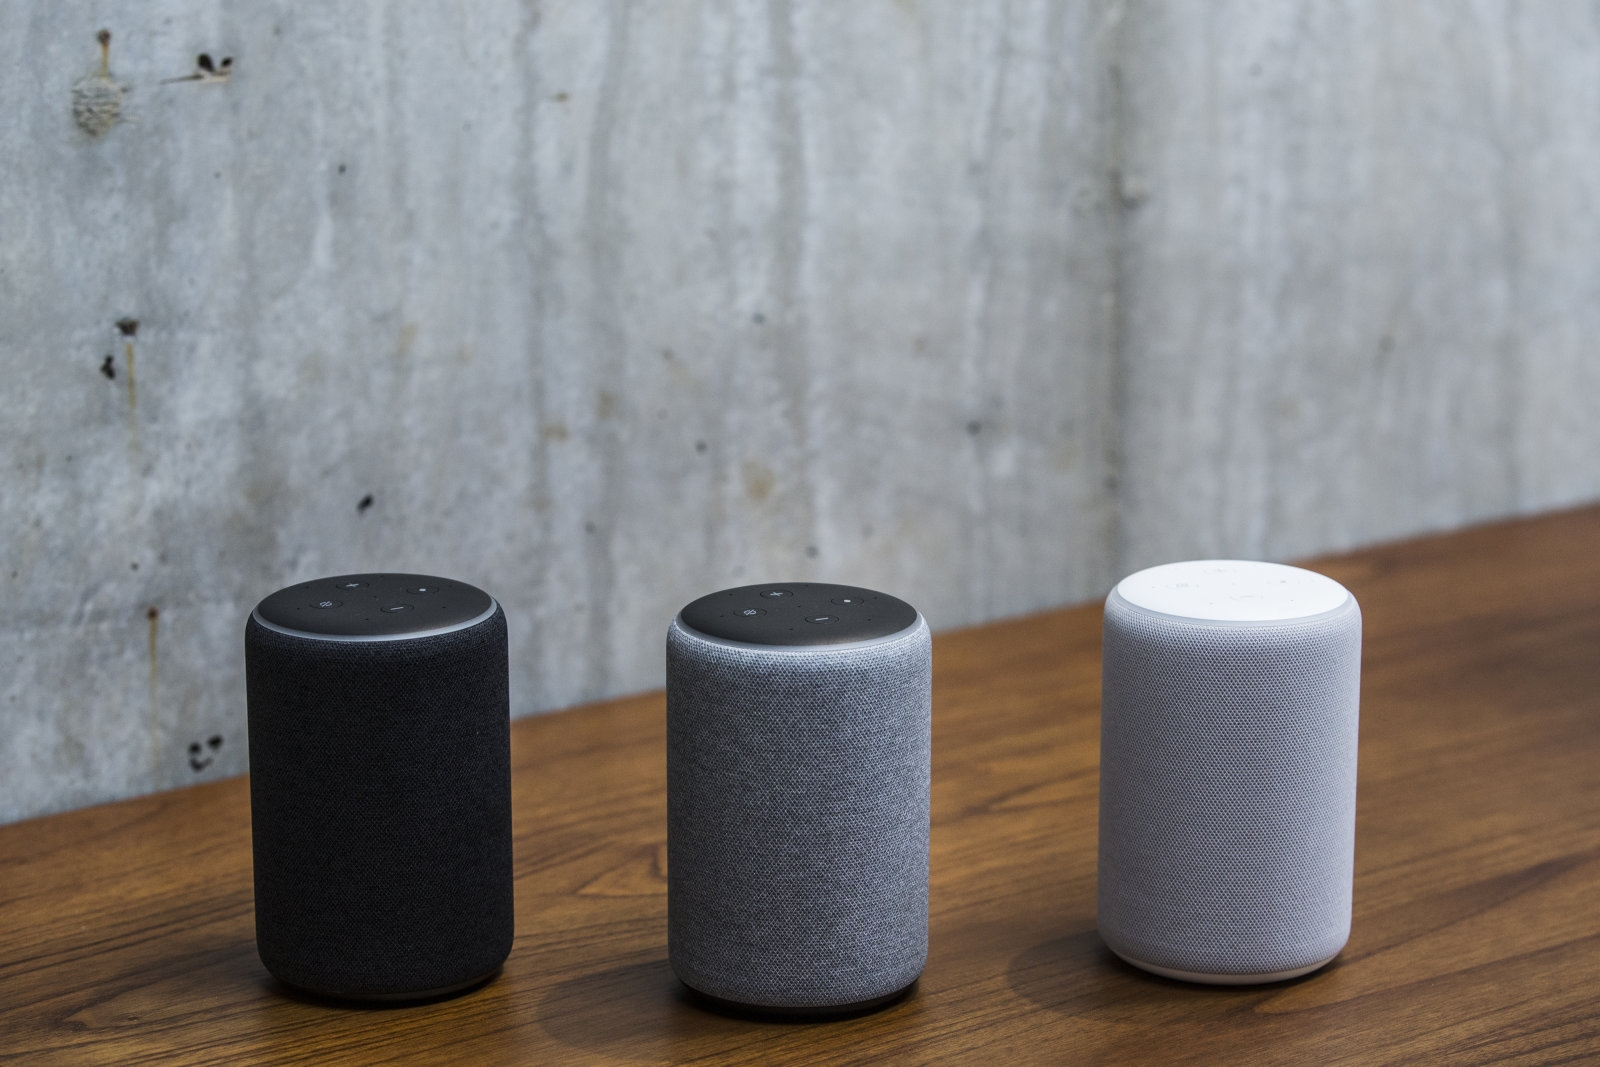 Tidal music streaming is now available on Amazon's Echo speakers | DeviceDaily.com